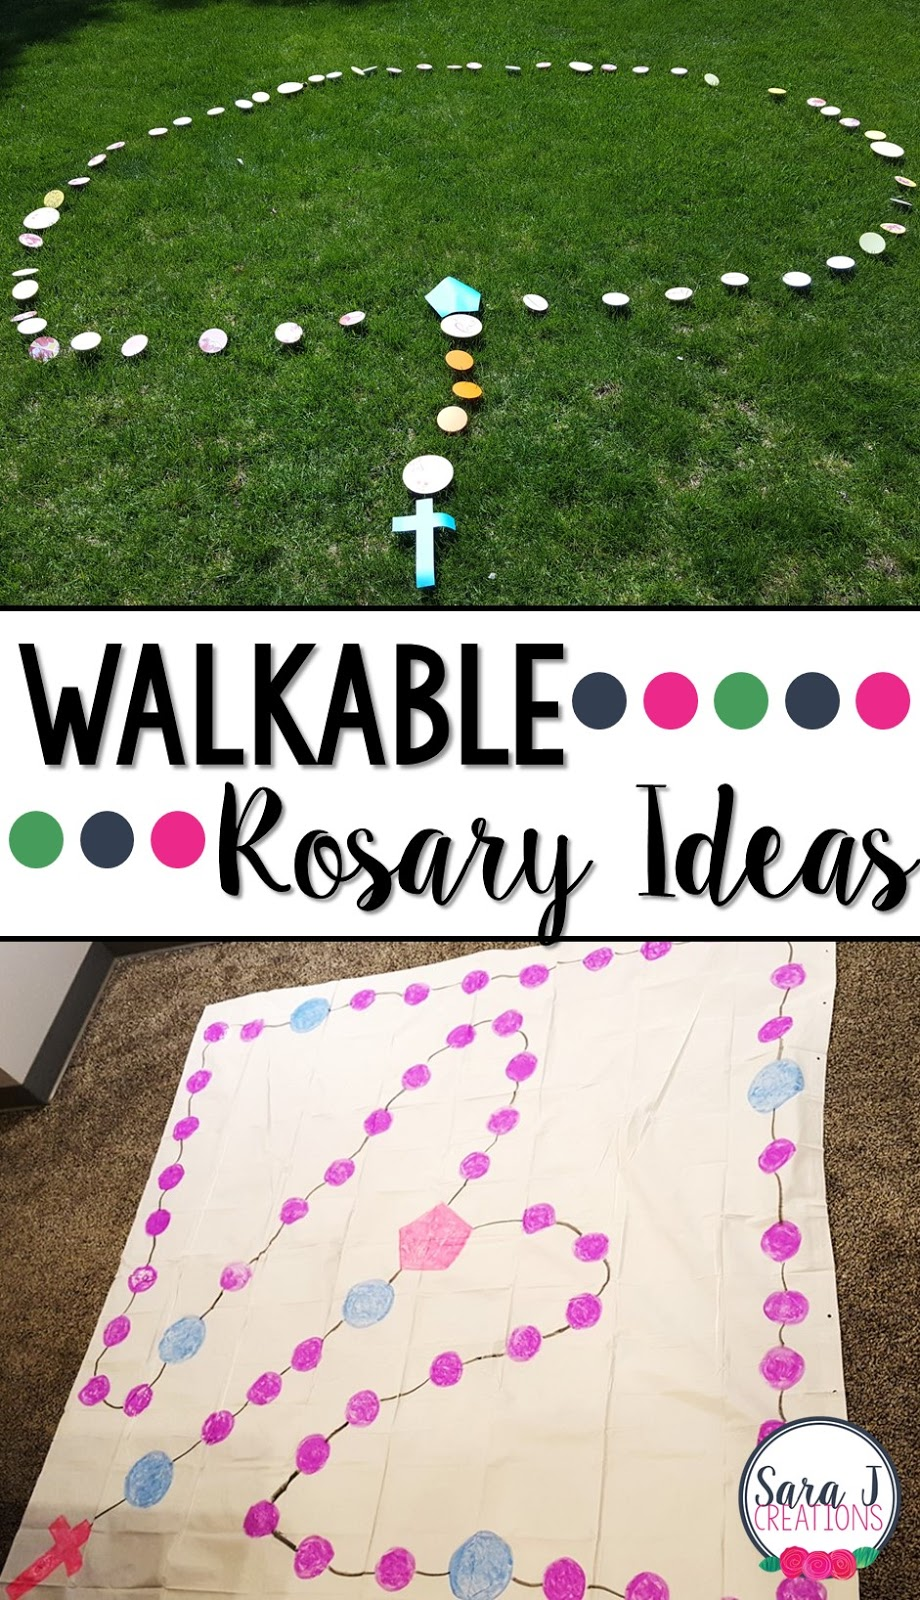 Help children learn to pray the Rosary in a fun and engaging way.   Walkable rosaries are a great way to get students up and moving whether inside or outside.